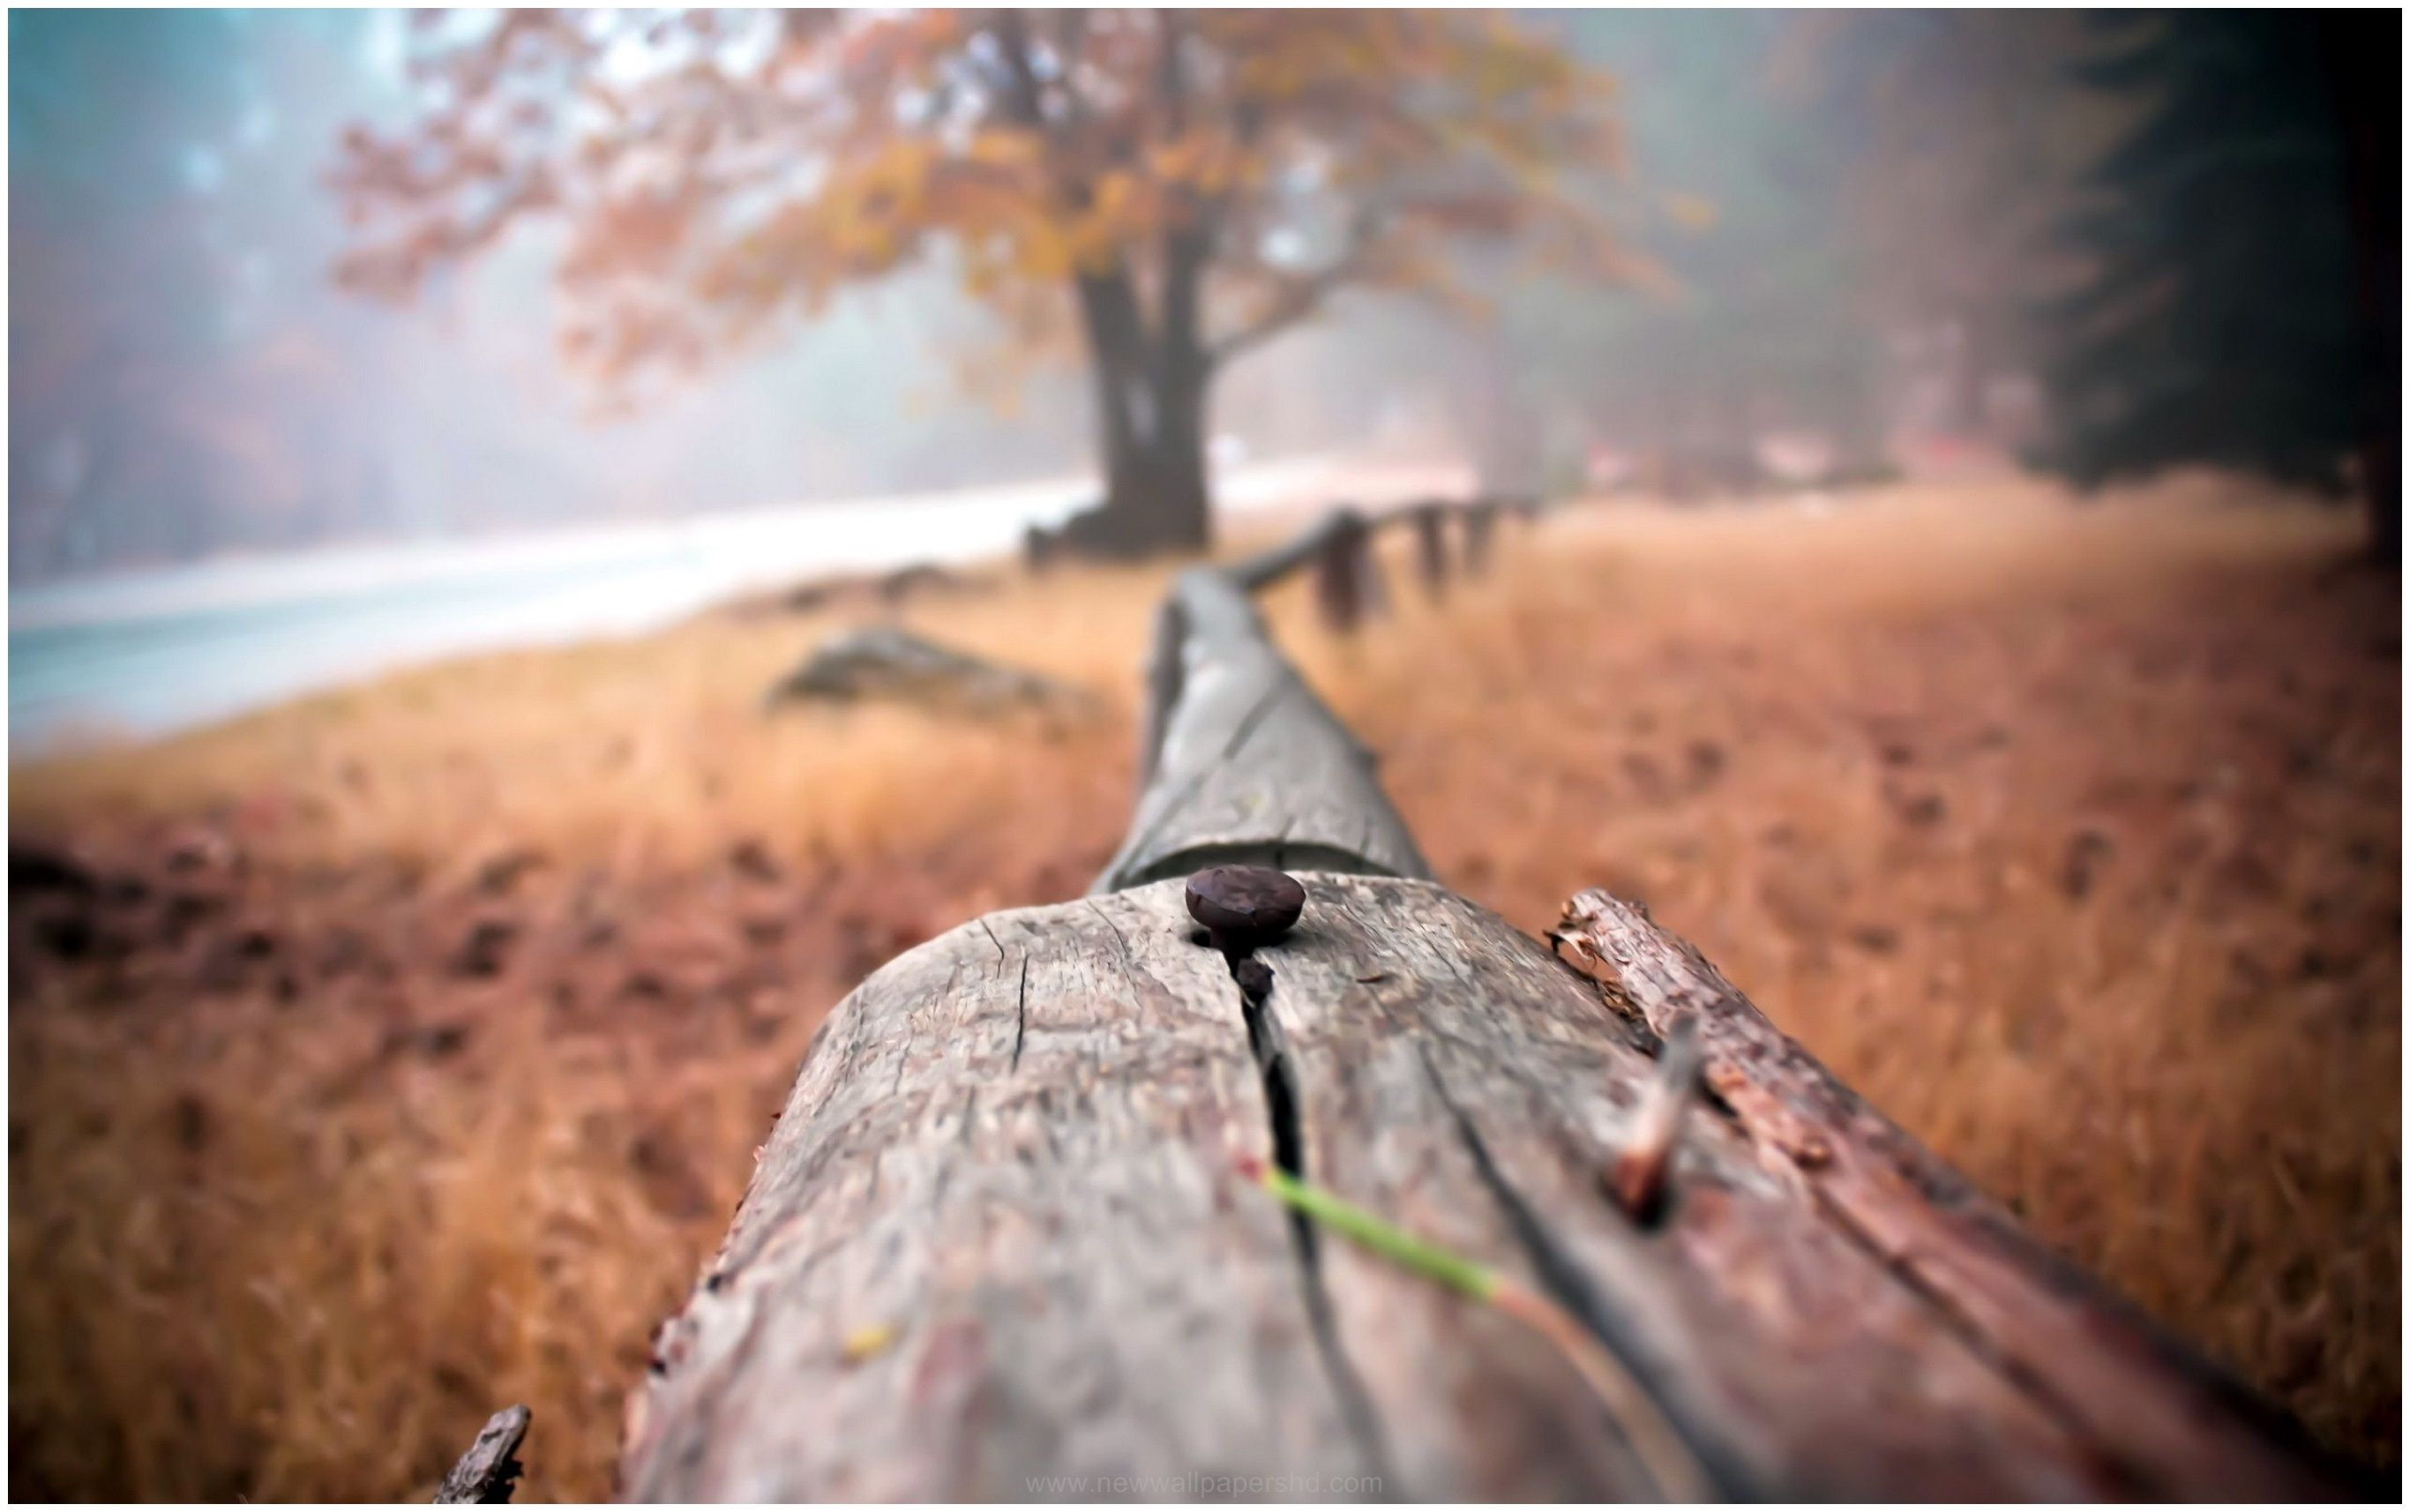 Forest Landscape Close Up Photography Hd Wallpaper Close Up Photography Forest Landscape Nature Photography